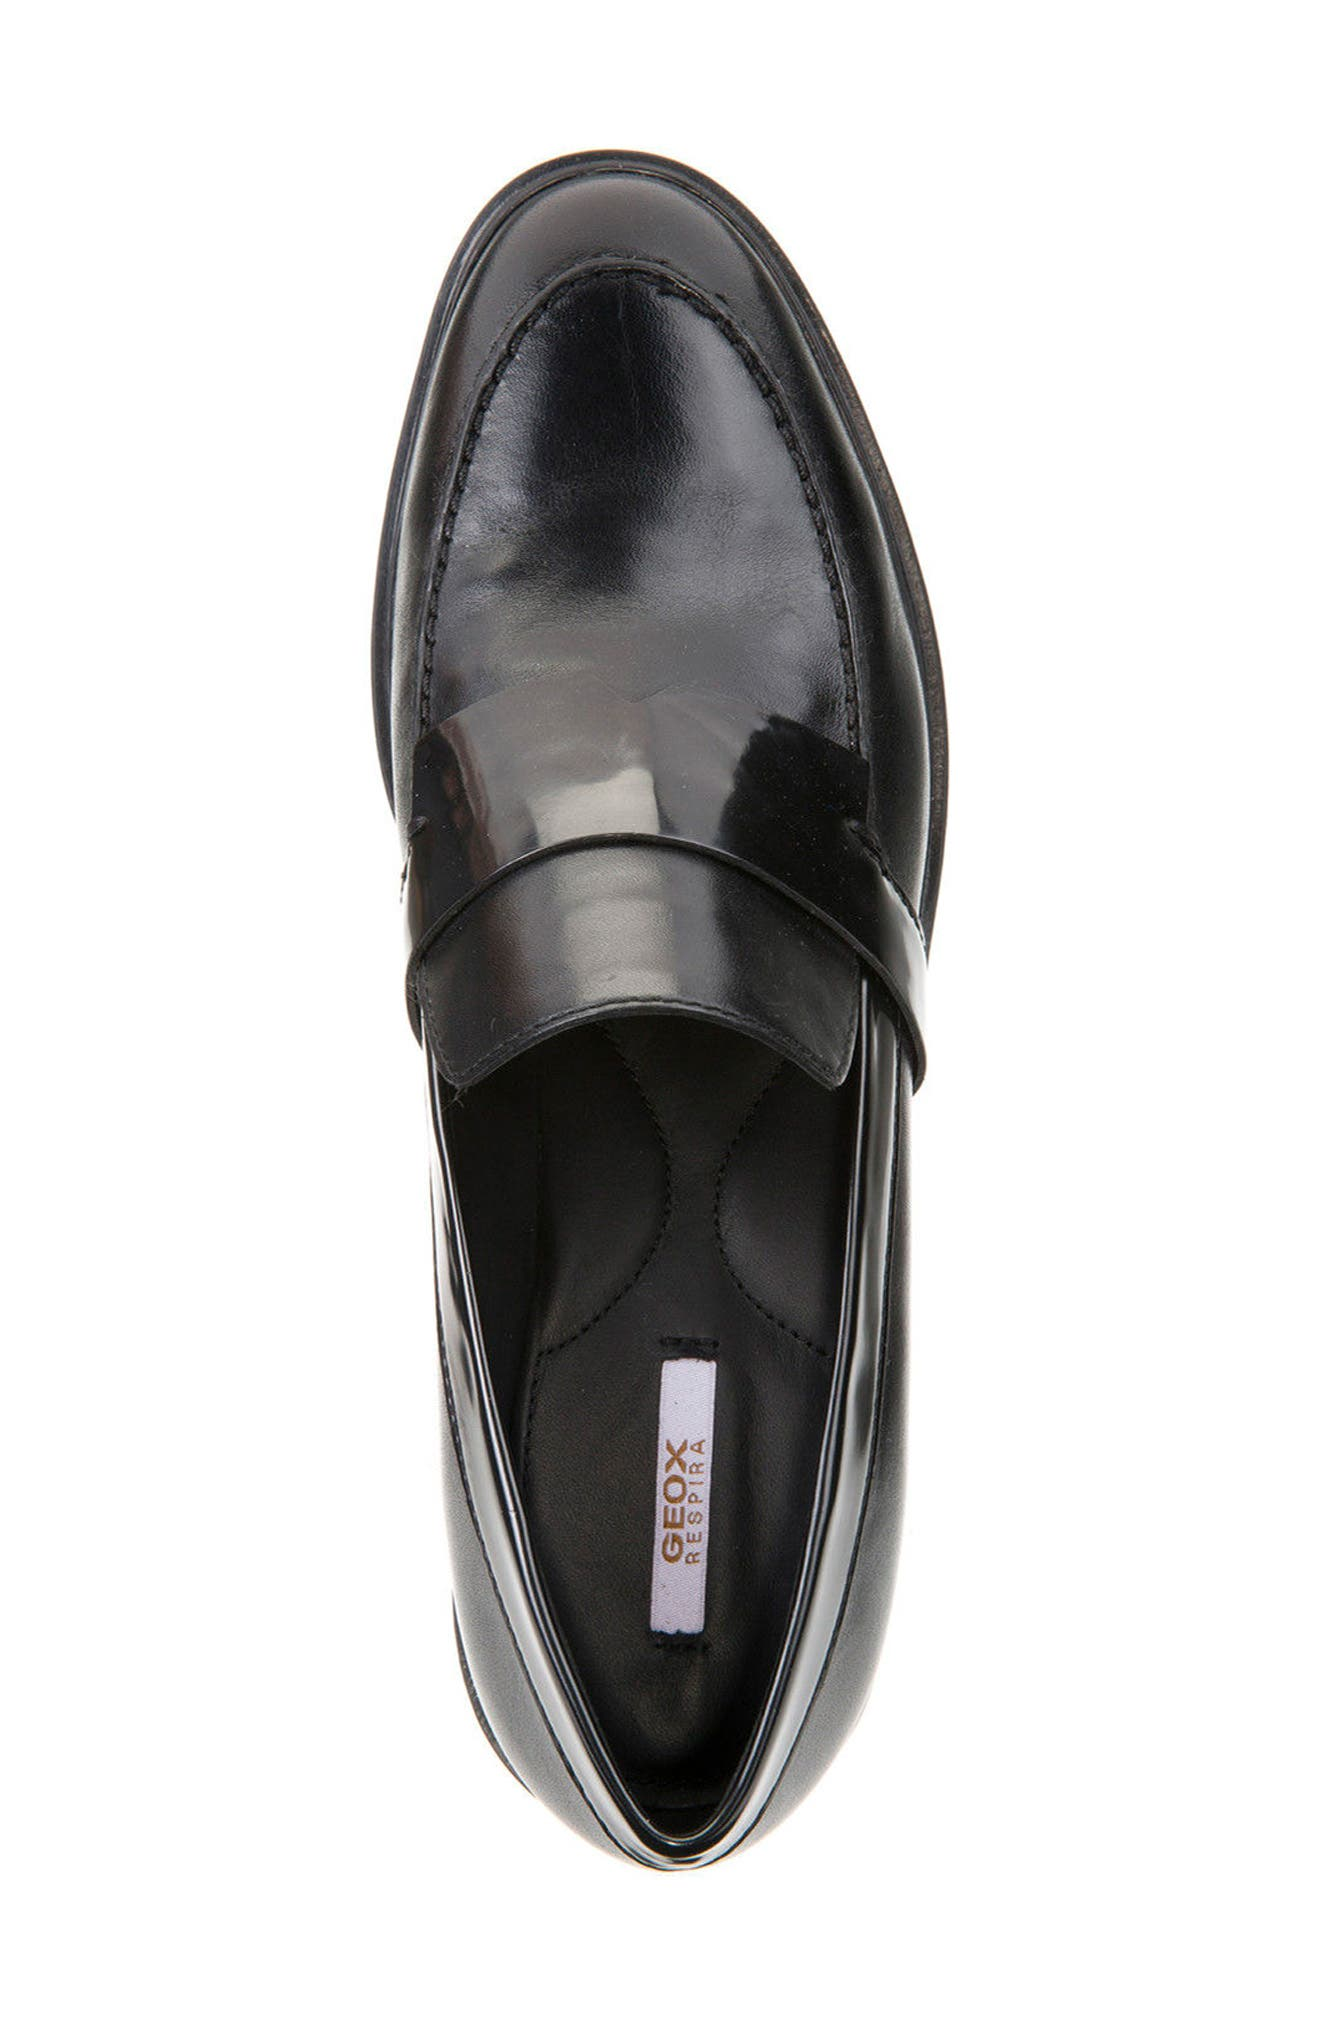 Peaceful Loafer Pump,                             Alternate thumbnail 3, color,                             001